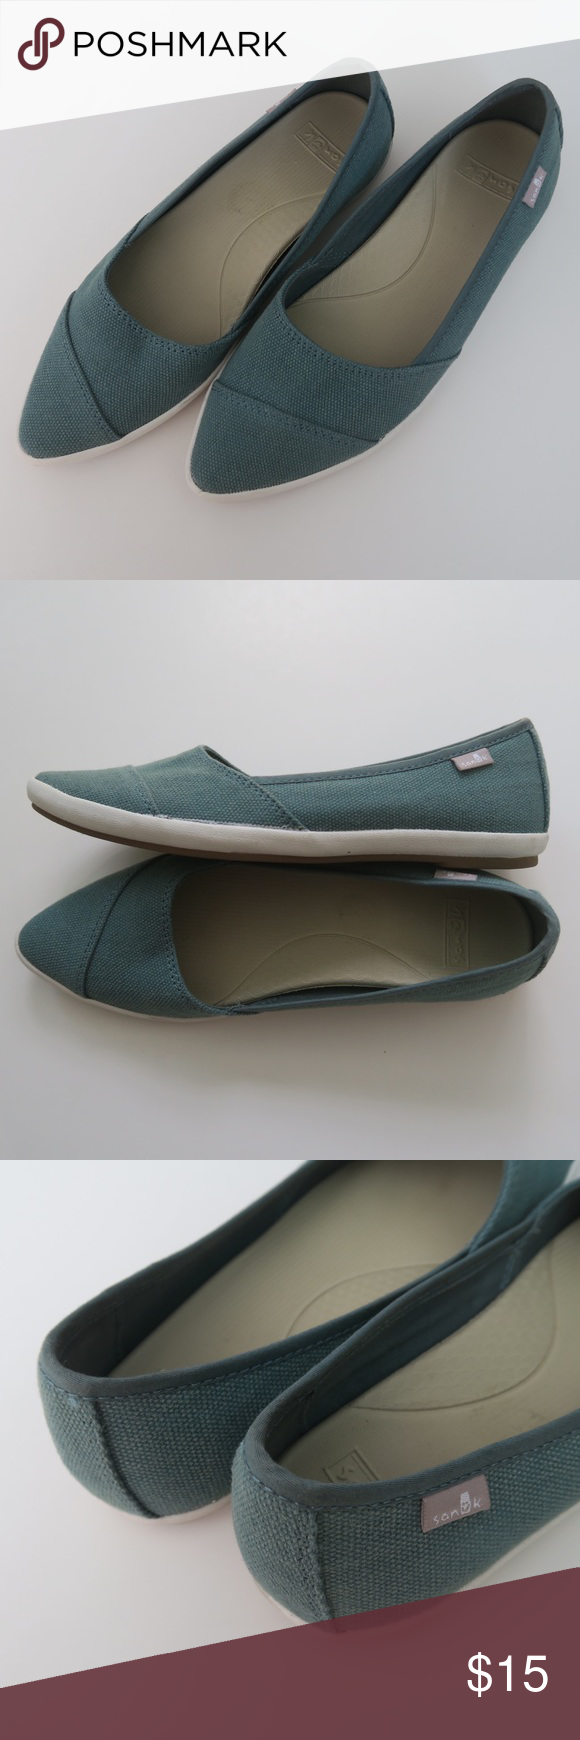 11ce9e489b182 Sanuk Women's Kat Prowl Pointed Flats - Size 5.5 * Used, in good ...